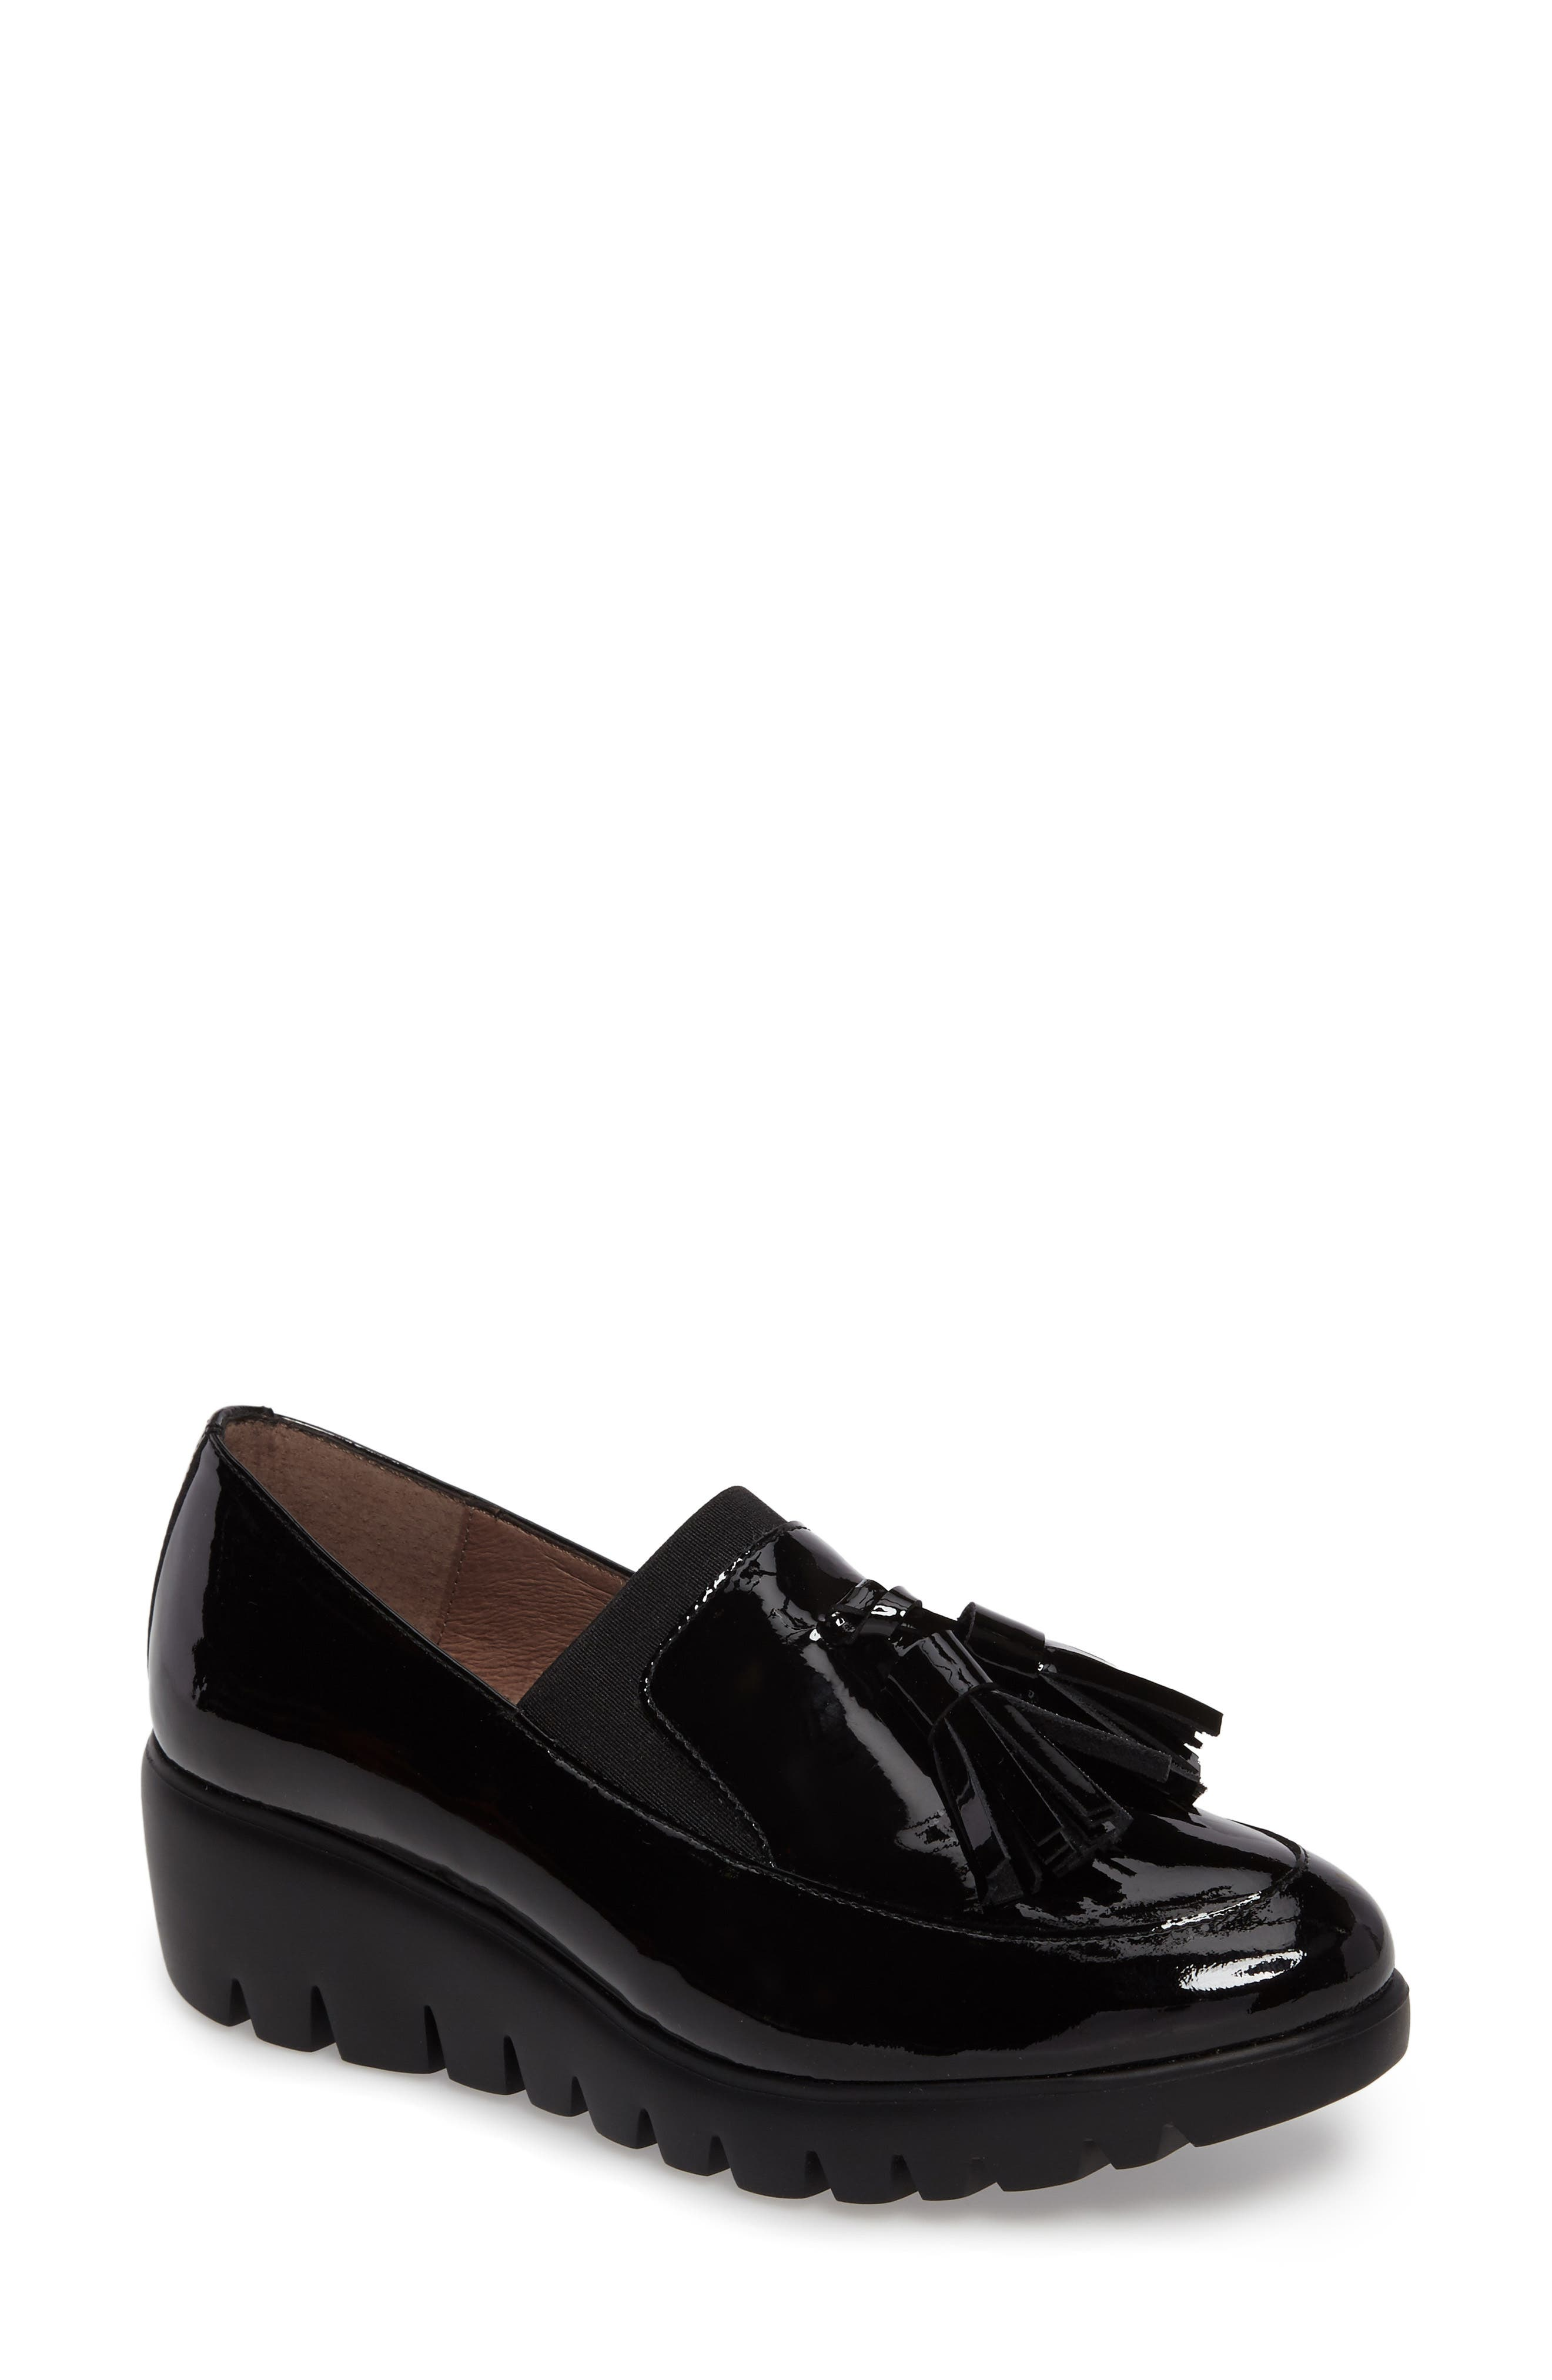 Talla Loafer Wedge,                             Main thumbnail 1, color,                             Black Patent Leather